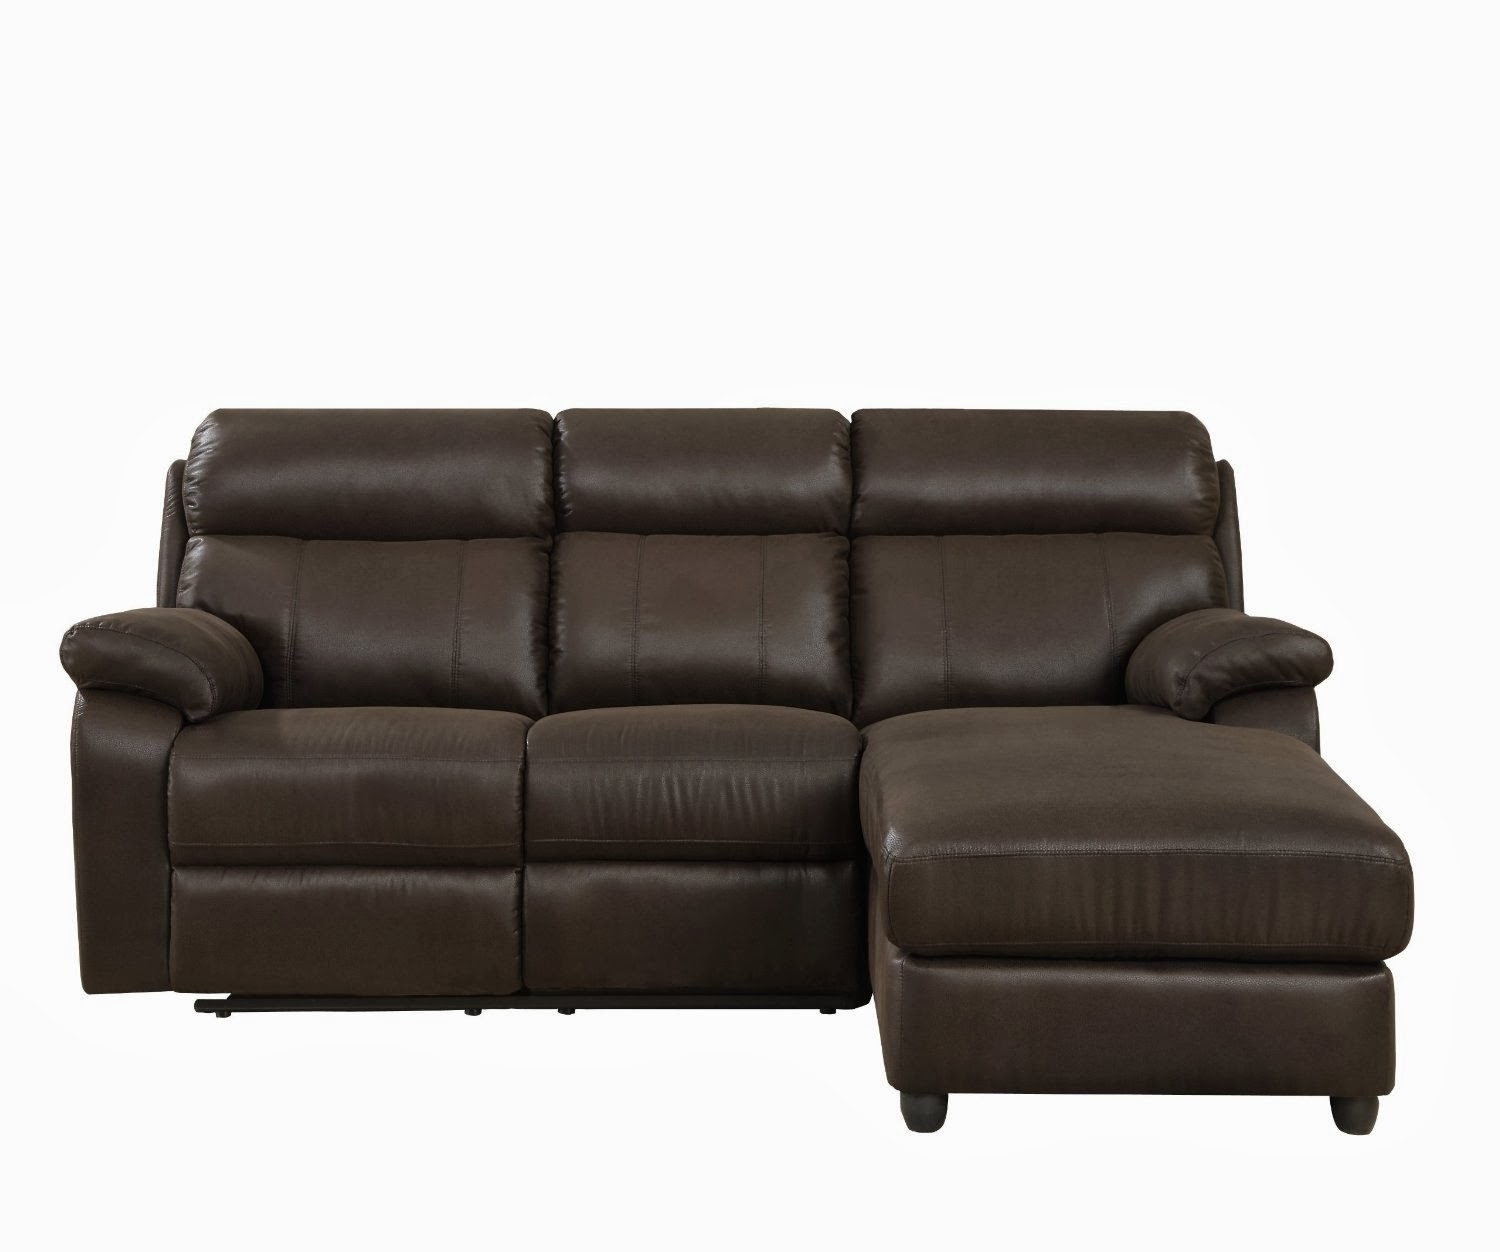 Small High Back Leather Sectional Sofa With Chaise For 3 – Decofurnish For Sectional Sofas With High Backs (View 9 of 10)